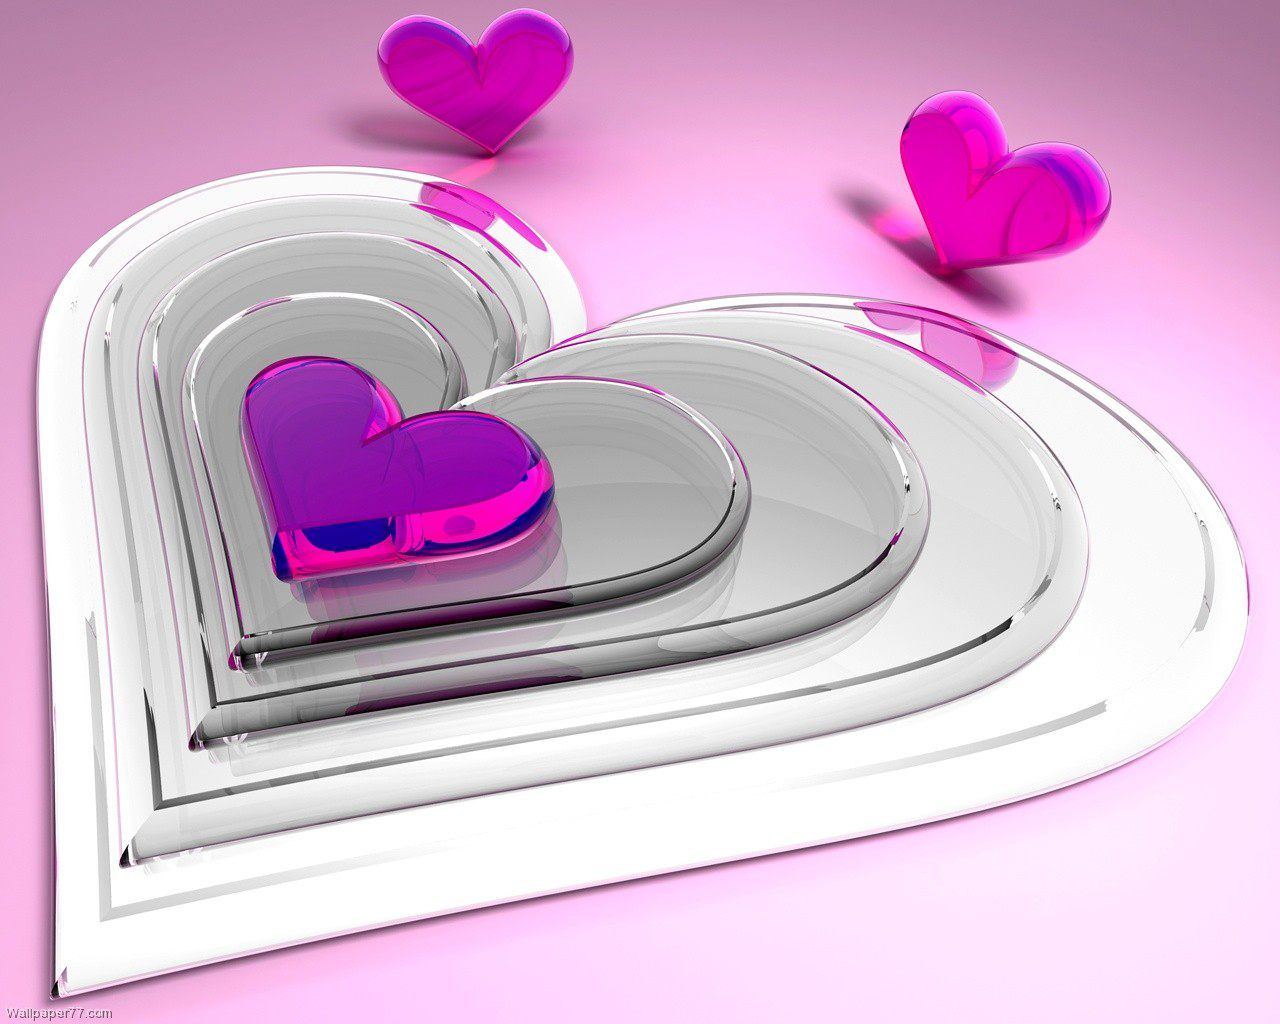 3d Heart Love Wallpapers 4852 Wallpaper: 3d Pretty Heart HD Wallpapers